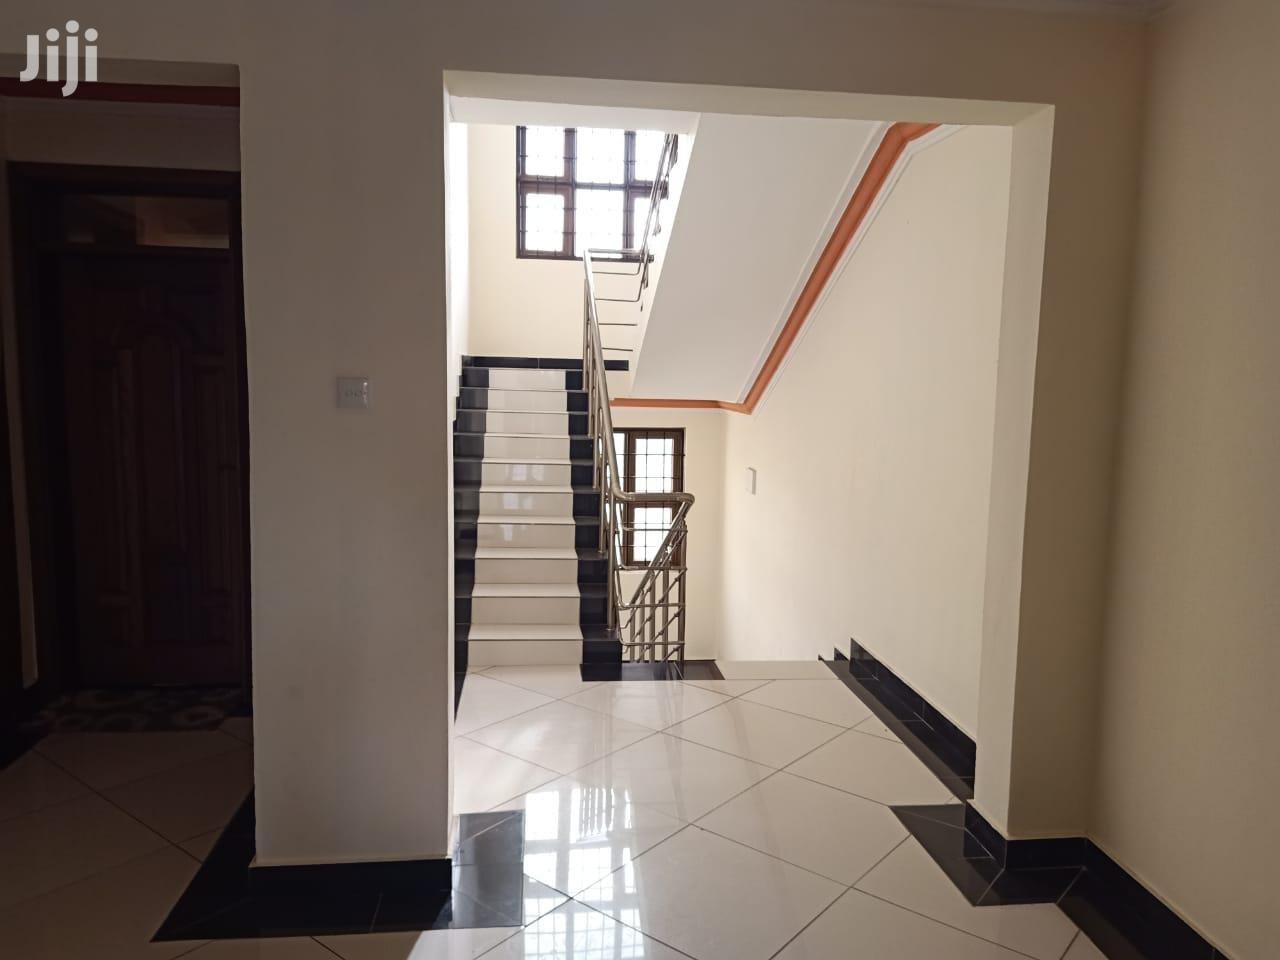 For Sale 4 Bedrooms Mansion Shanzu | Houses & Apartments For Sale for sale in Kisauni, Mombasa, Kenya